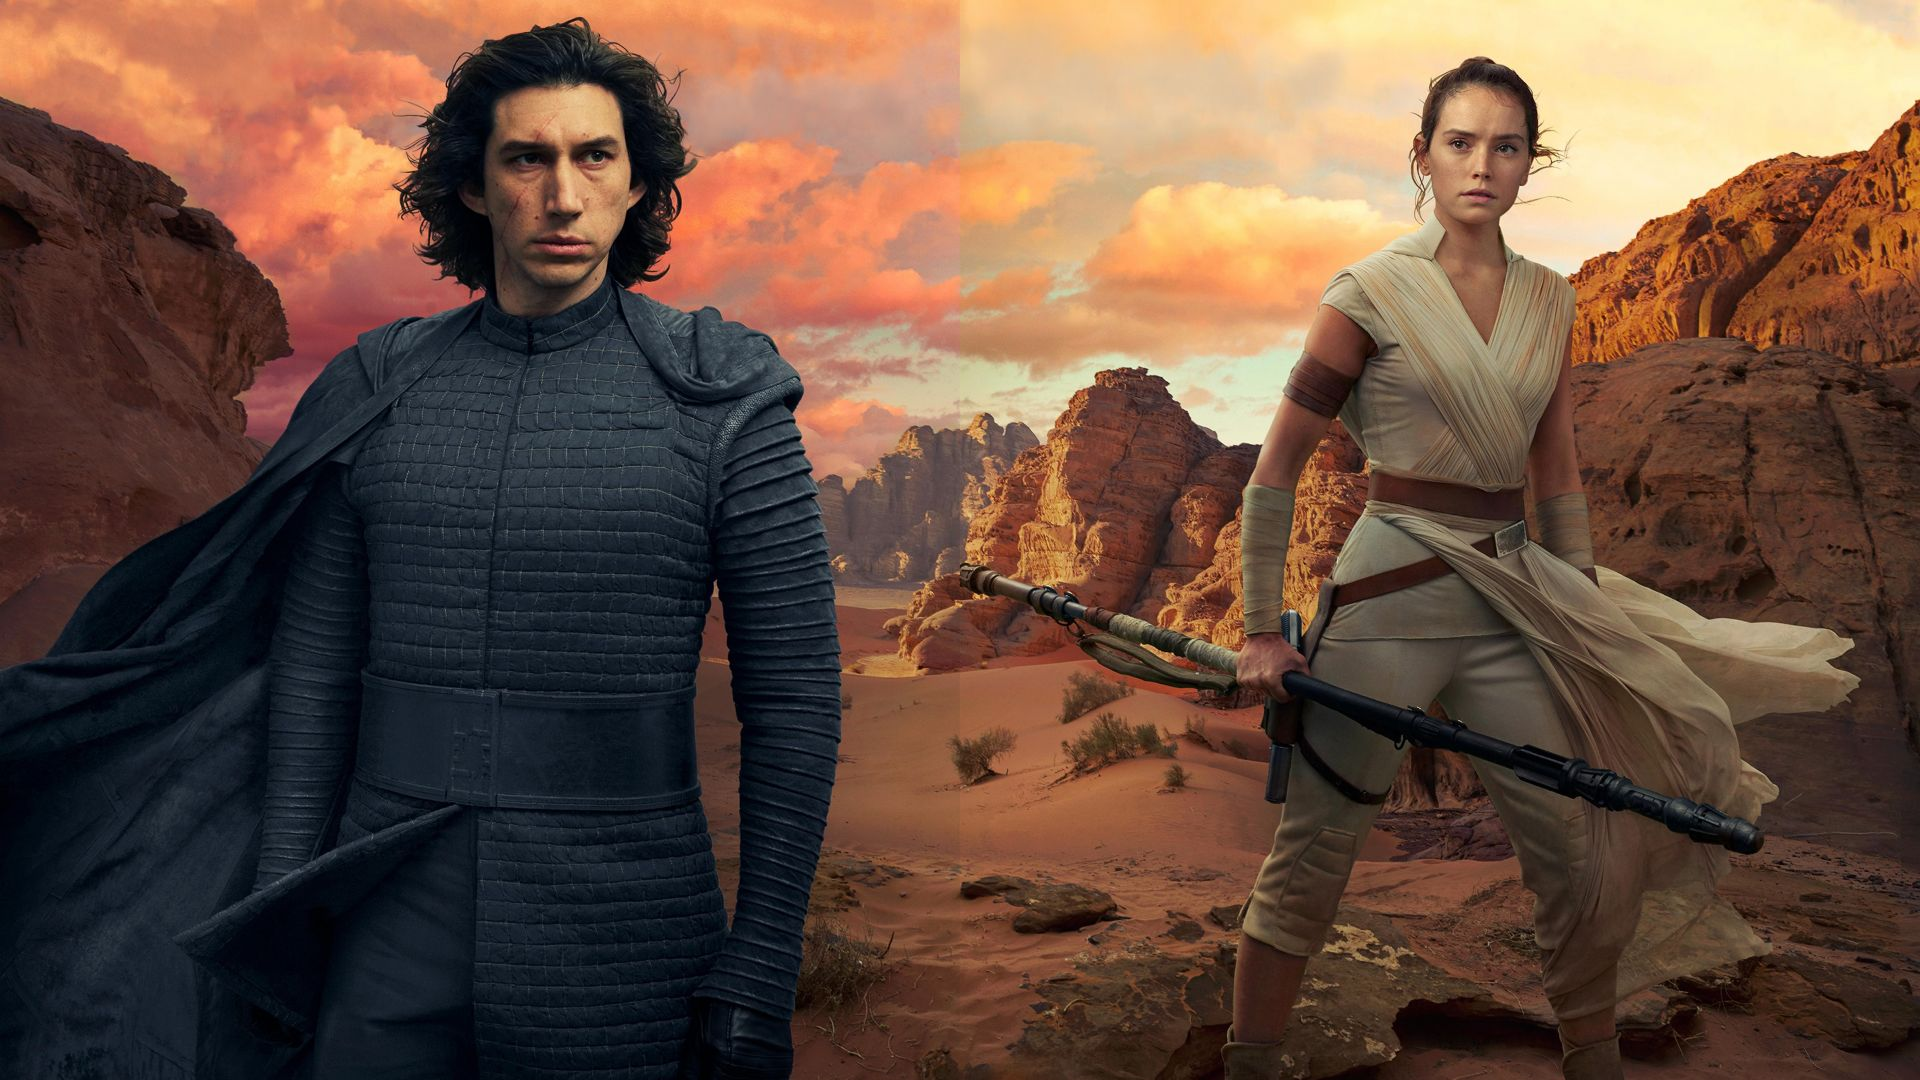 Звёздные войны: Скайуокер. Восход, Star Wars: The Rise of Skywalker, Adam Driver, Daisy Ridley, 5K (horizontal)